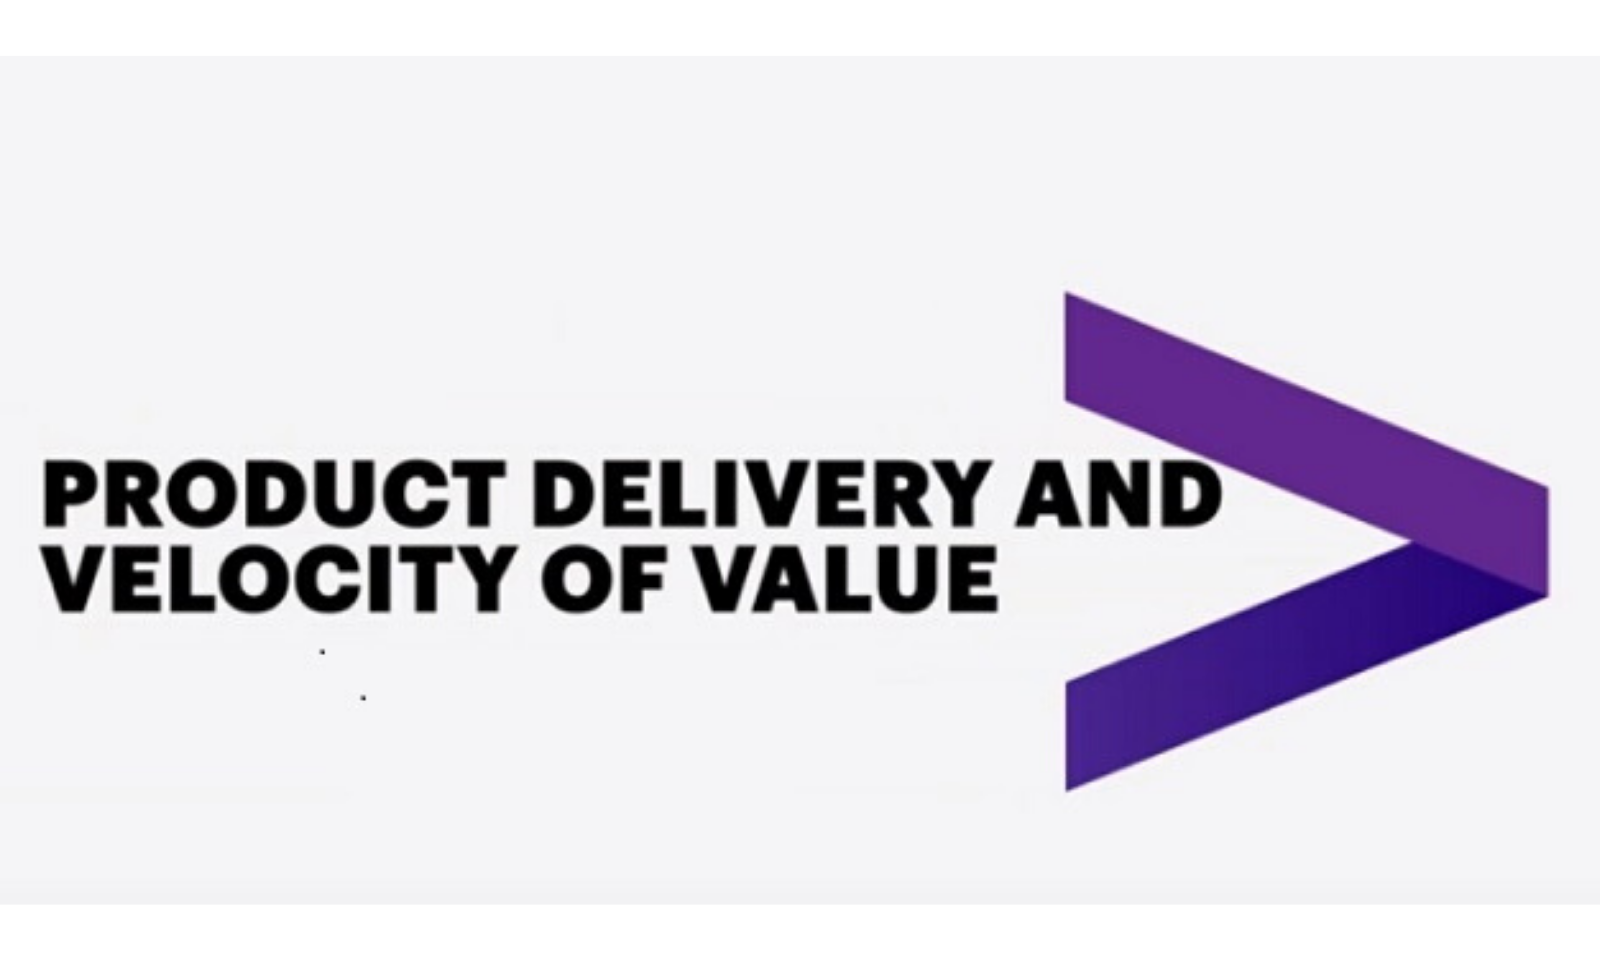 Product Delivery and Velocity of Value.